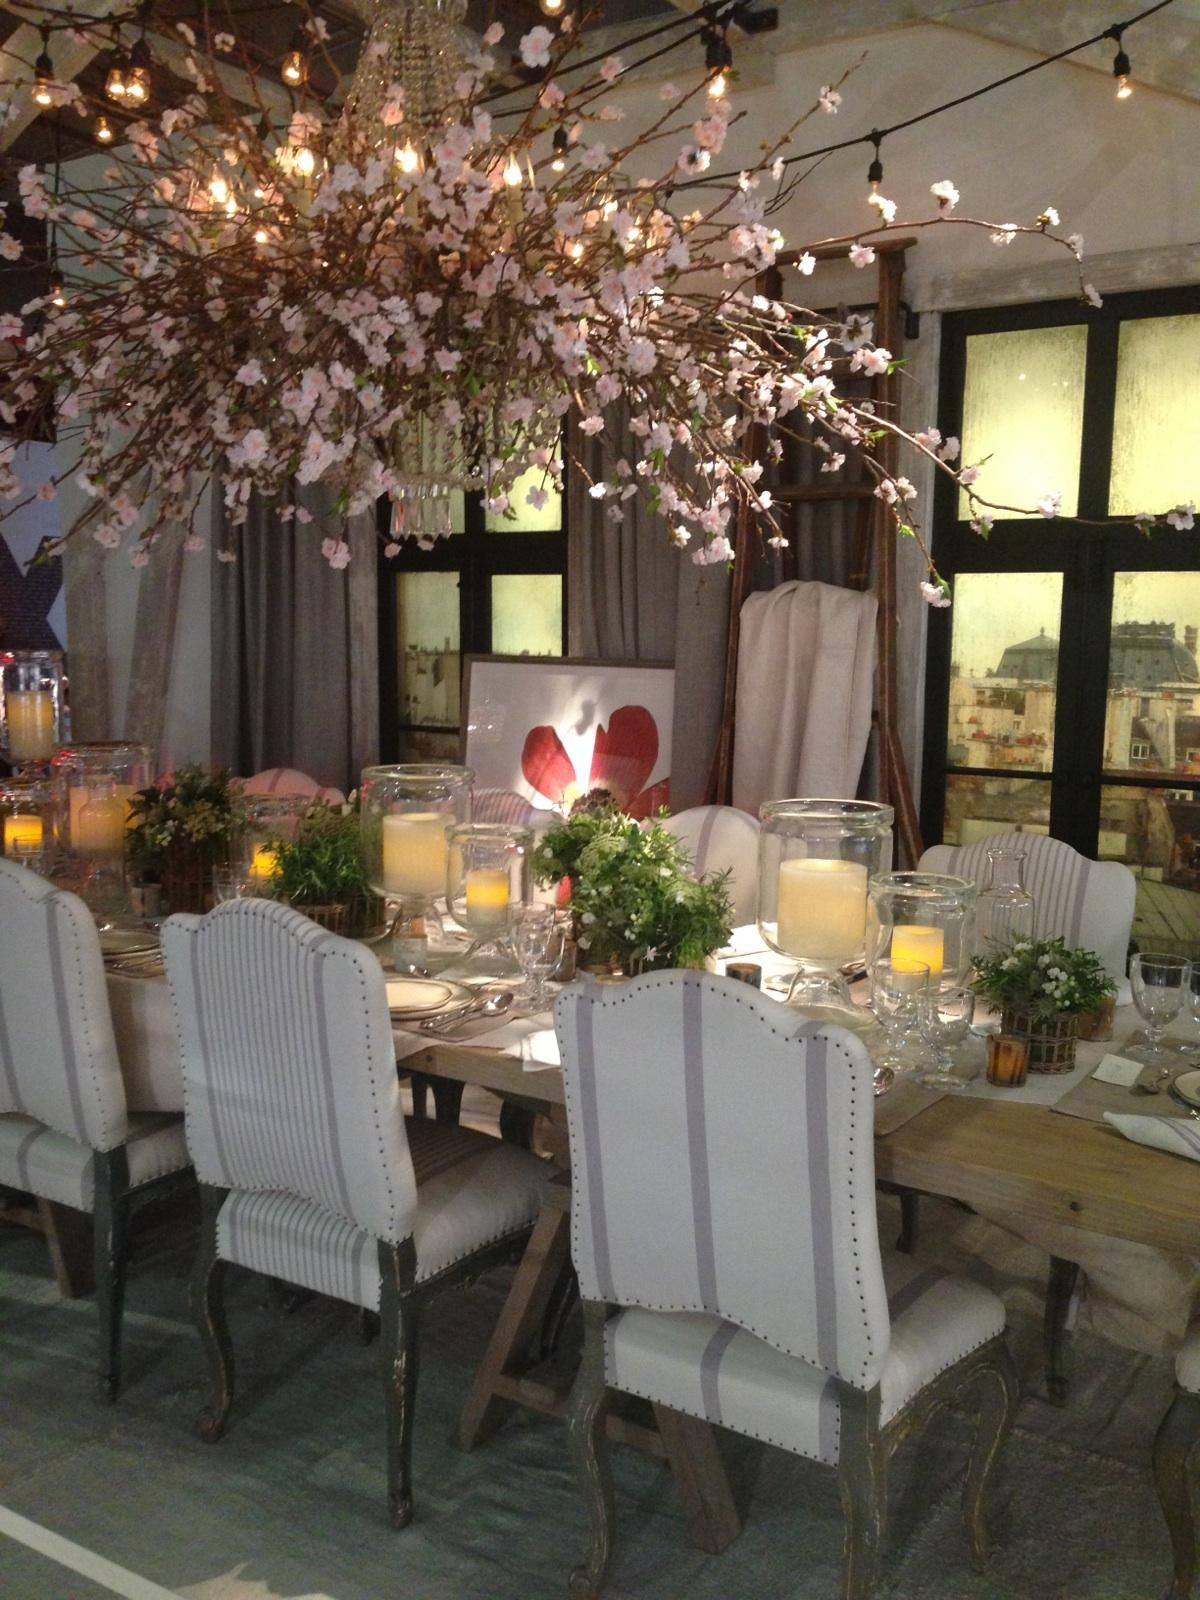 Ralph Lauren Tablescape At The DIFFA Event   2014 Architectural Digest Home  Design Show   NYC